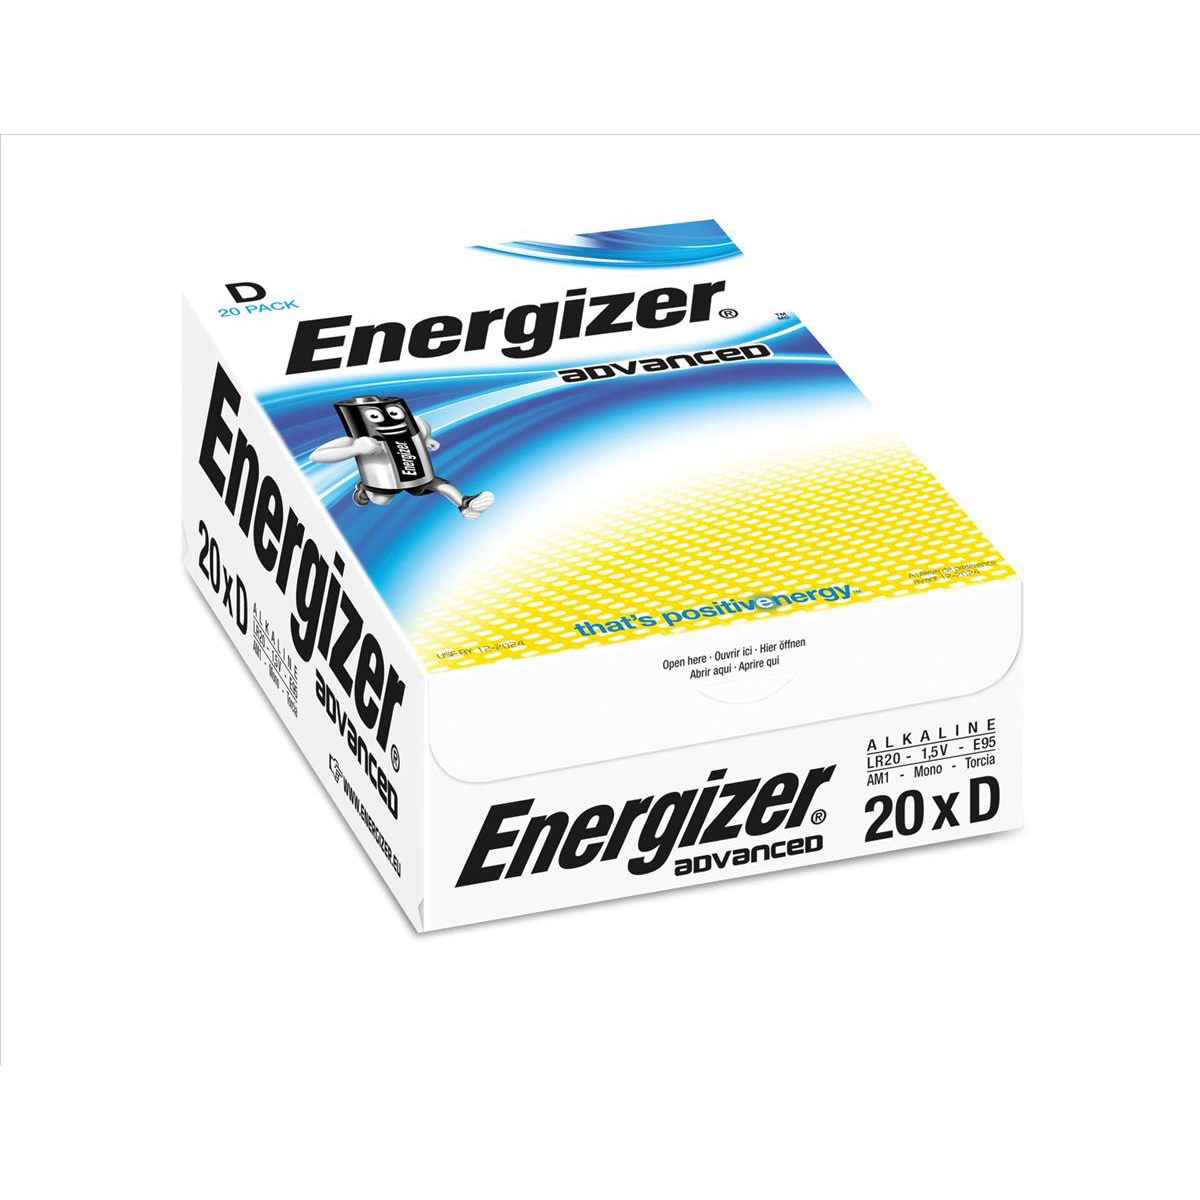 Energizer Eco Advanced Batteries D / E95 Ref E300488200 Pack 20